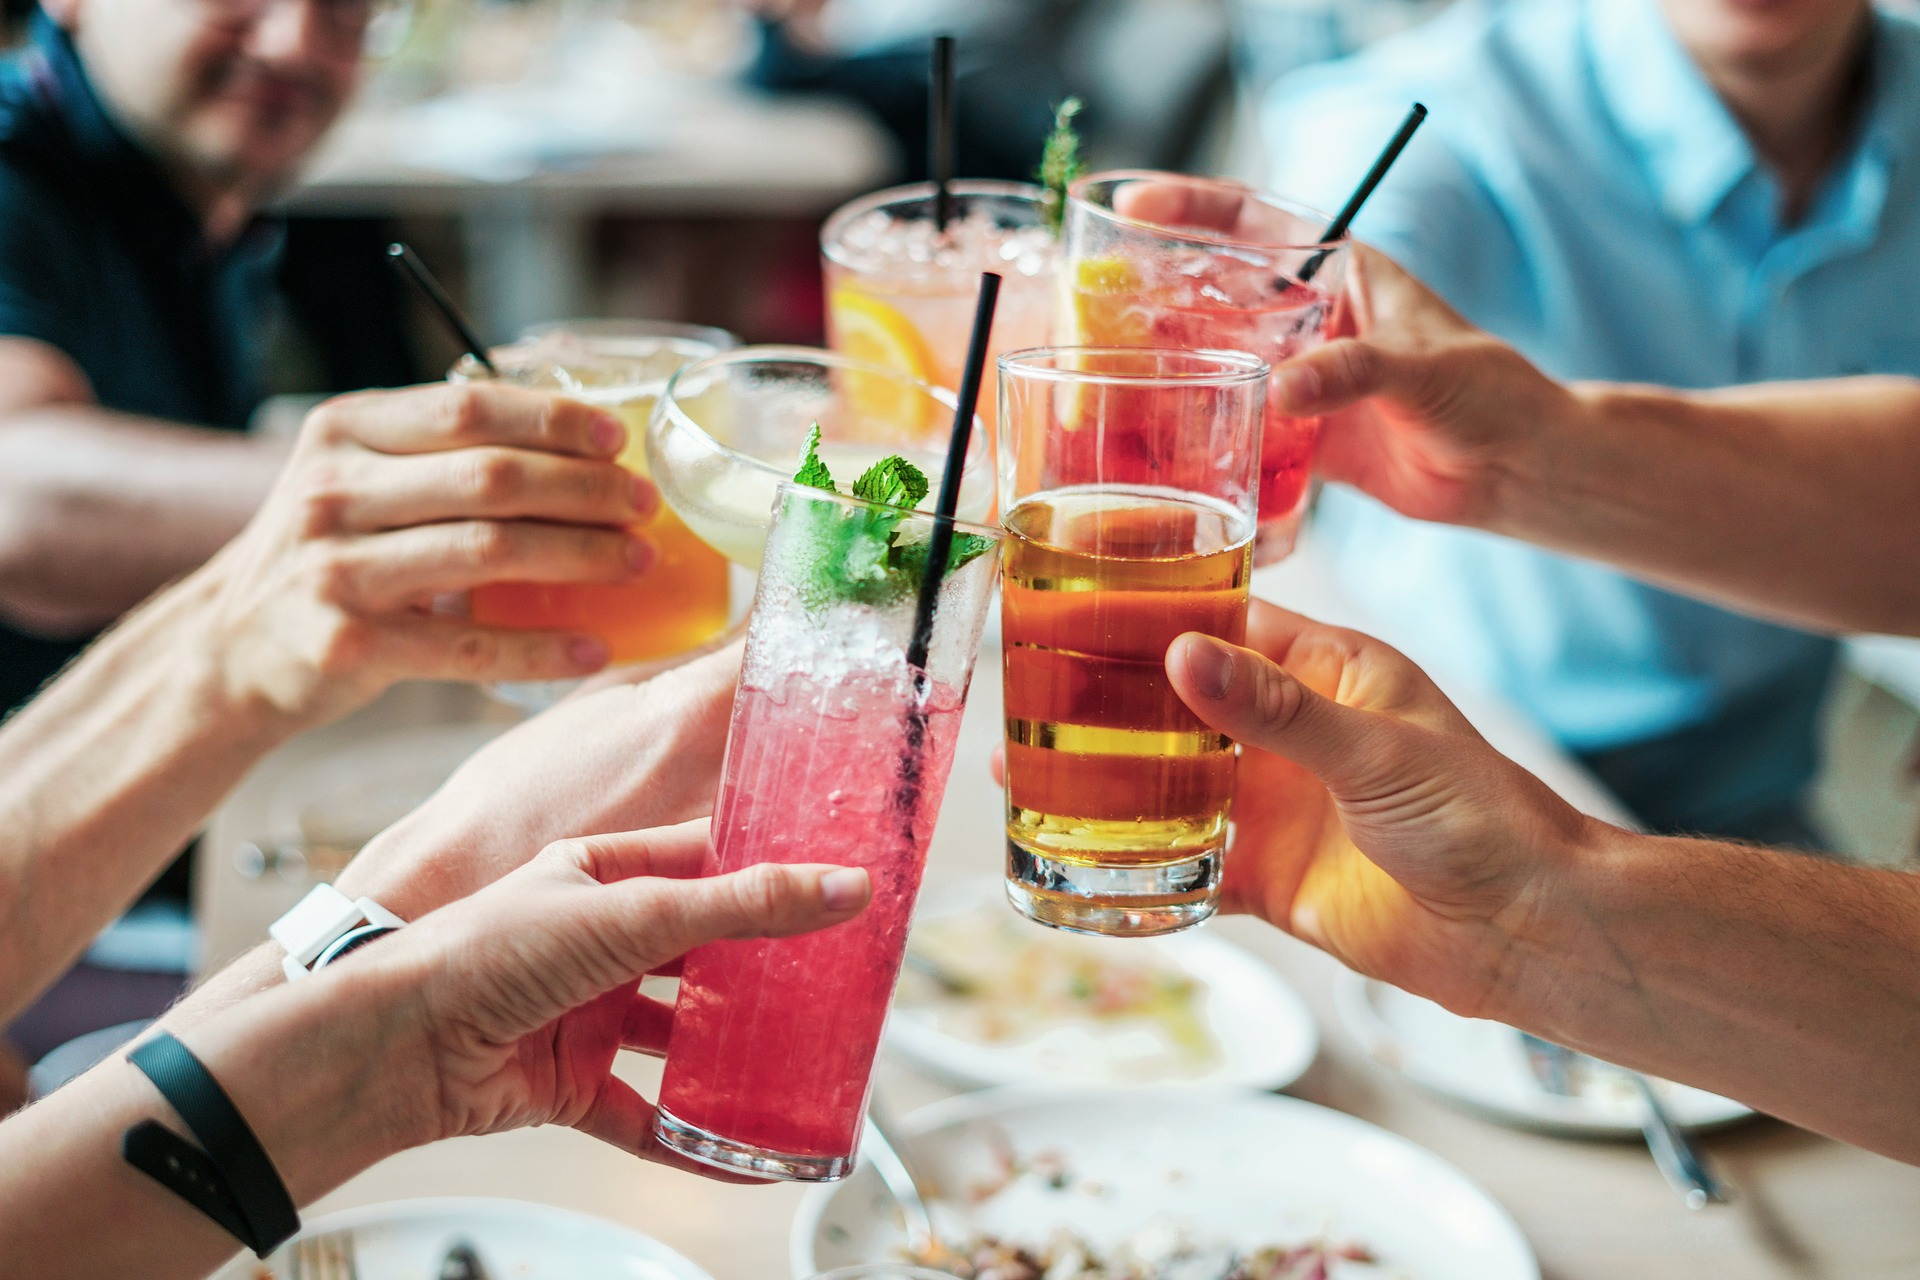 Weight Loss Tip #3 – Moderate Drinking May Help You Lose Weight